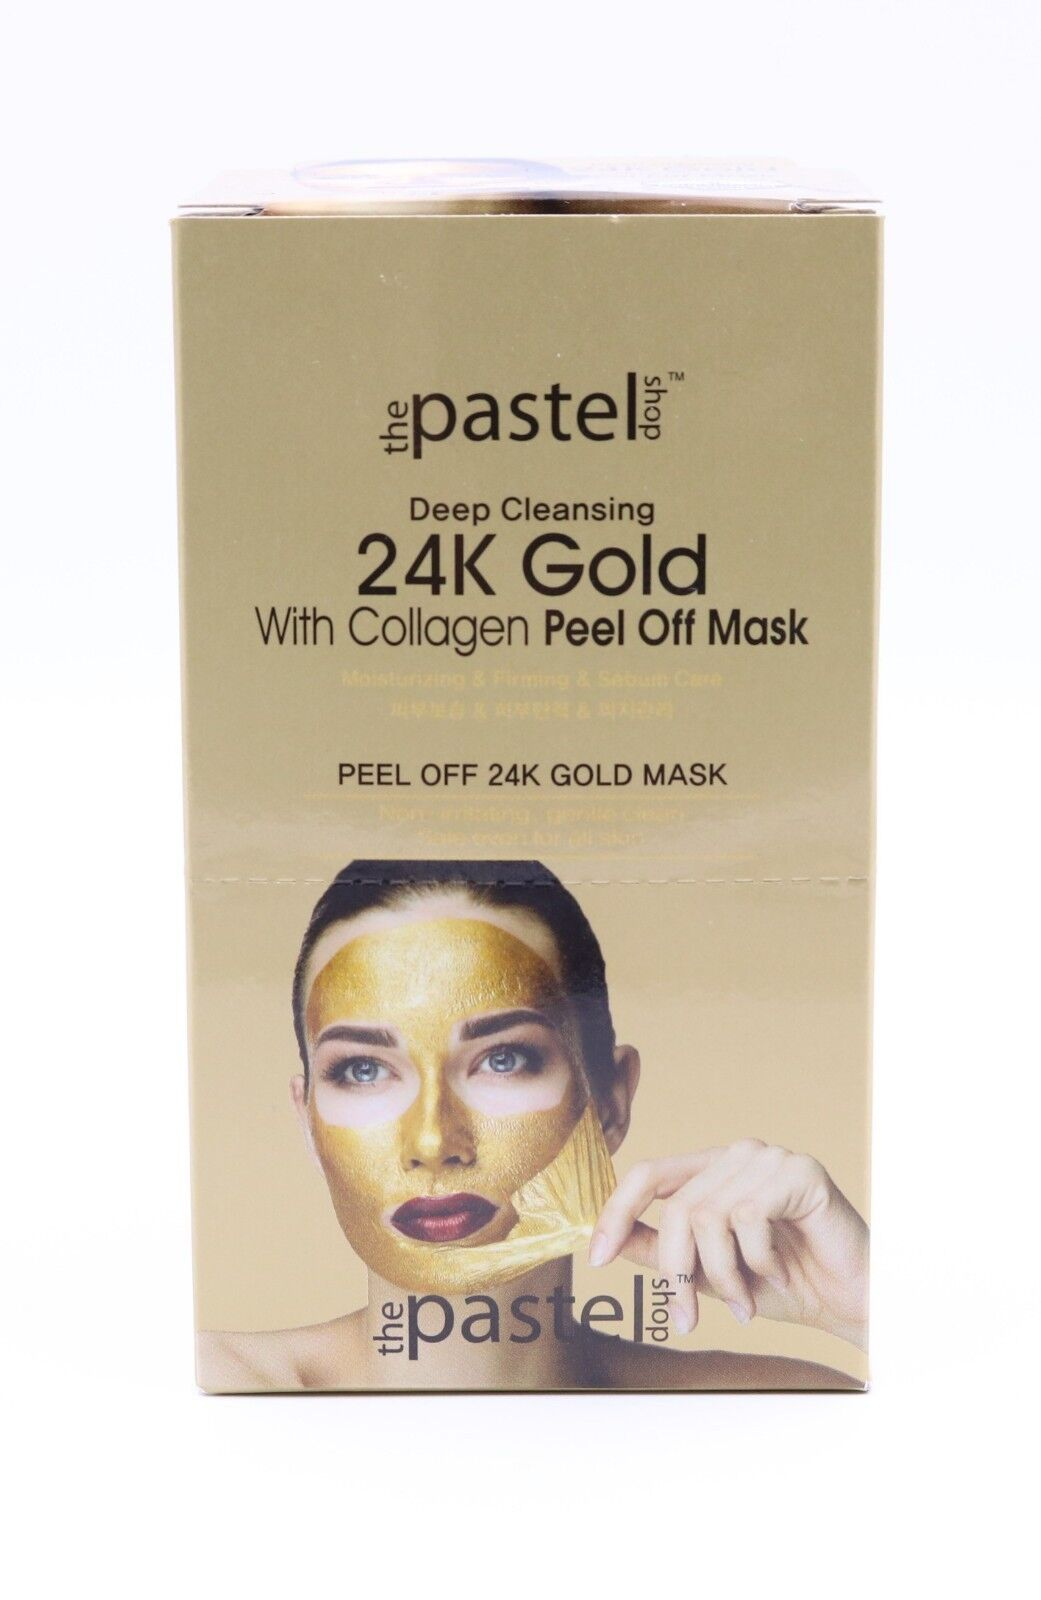 24K Gold with Collagen Peel-Off Mask Misturizing & Firming